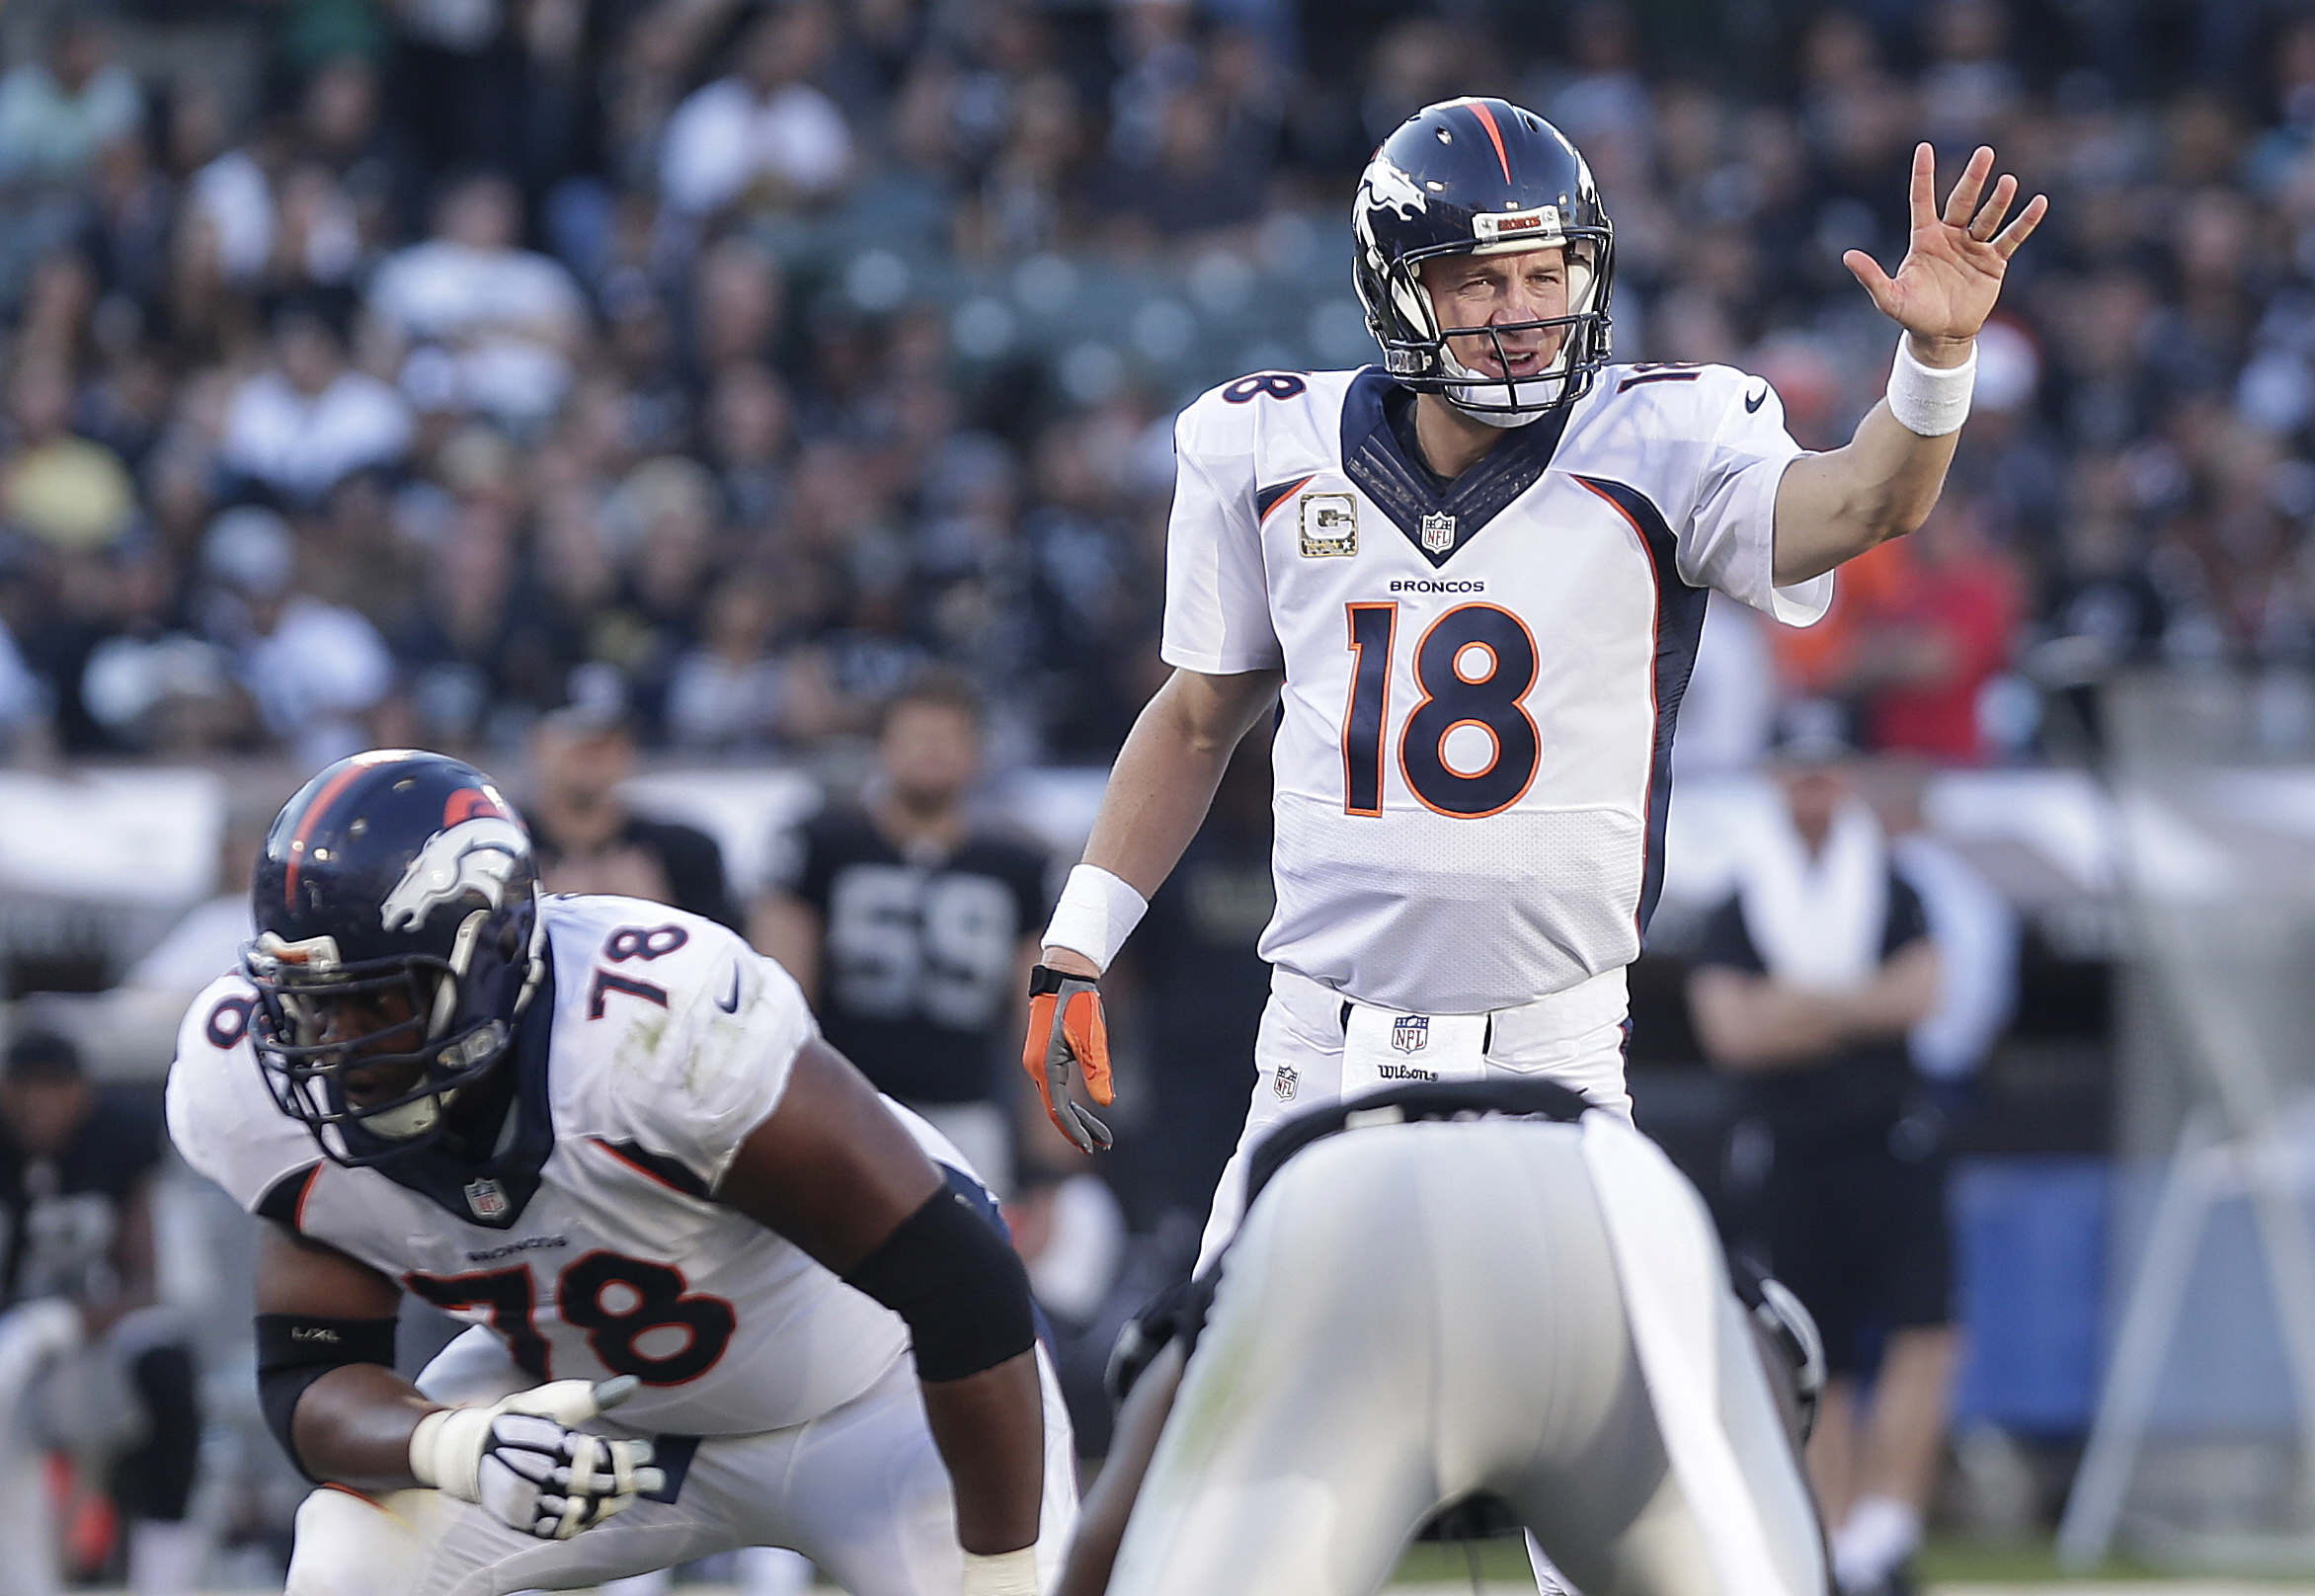 Denver Broncos quarterback Peyton Manning (18) signals at the line of scrimmage behind offensive tackle Ryan Clady (78) against the Oakland Raiders during the third quarter of an NFL football game in Oakland, Calif., Sunday, Nov. 9, 2014. (AP Photo/Marcio